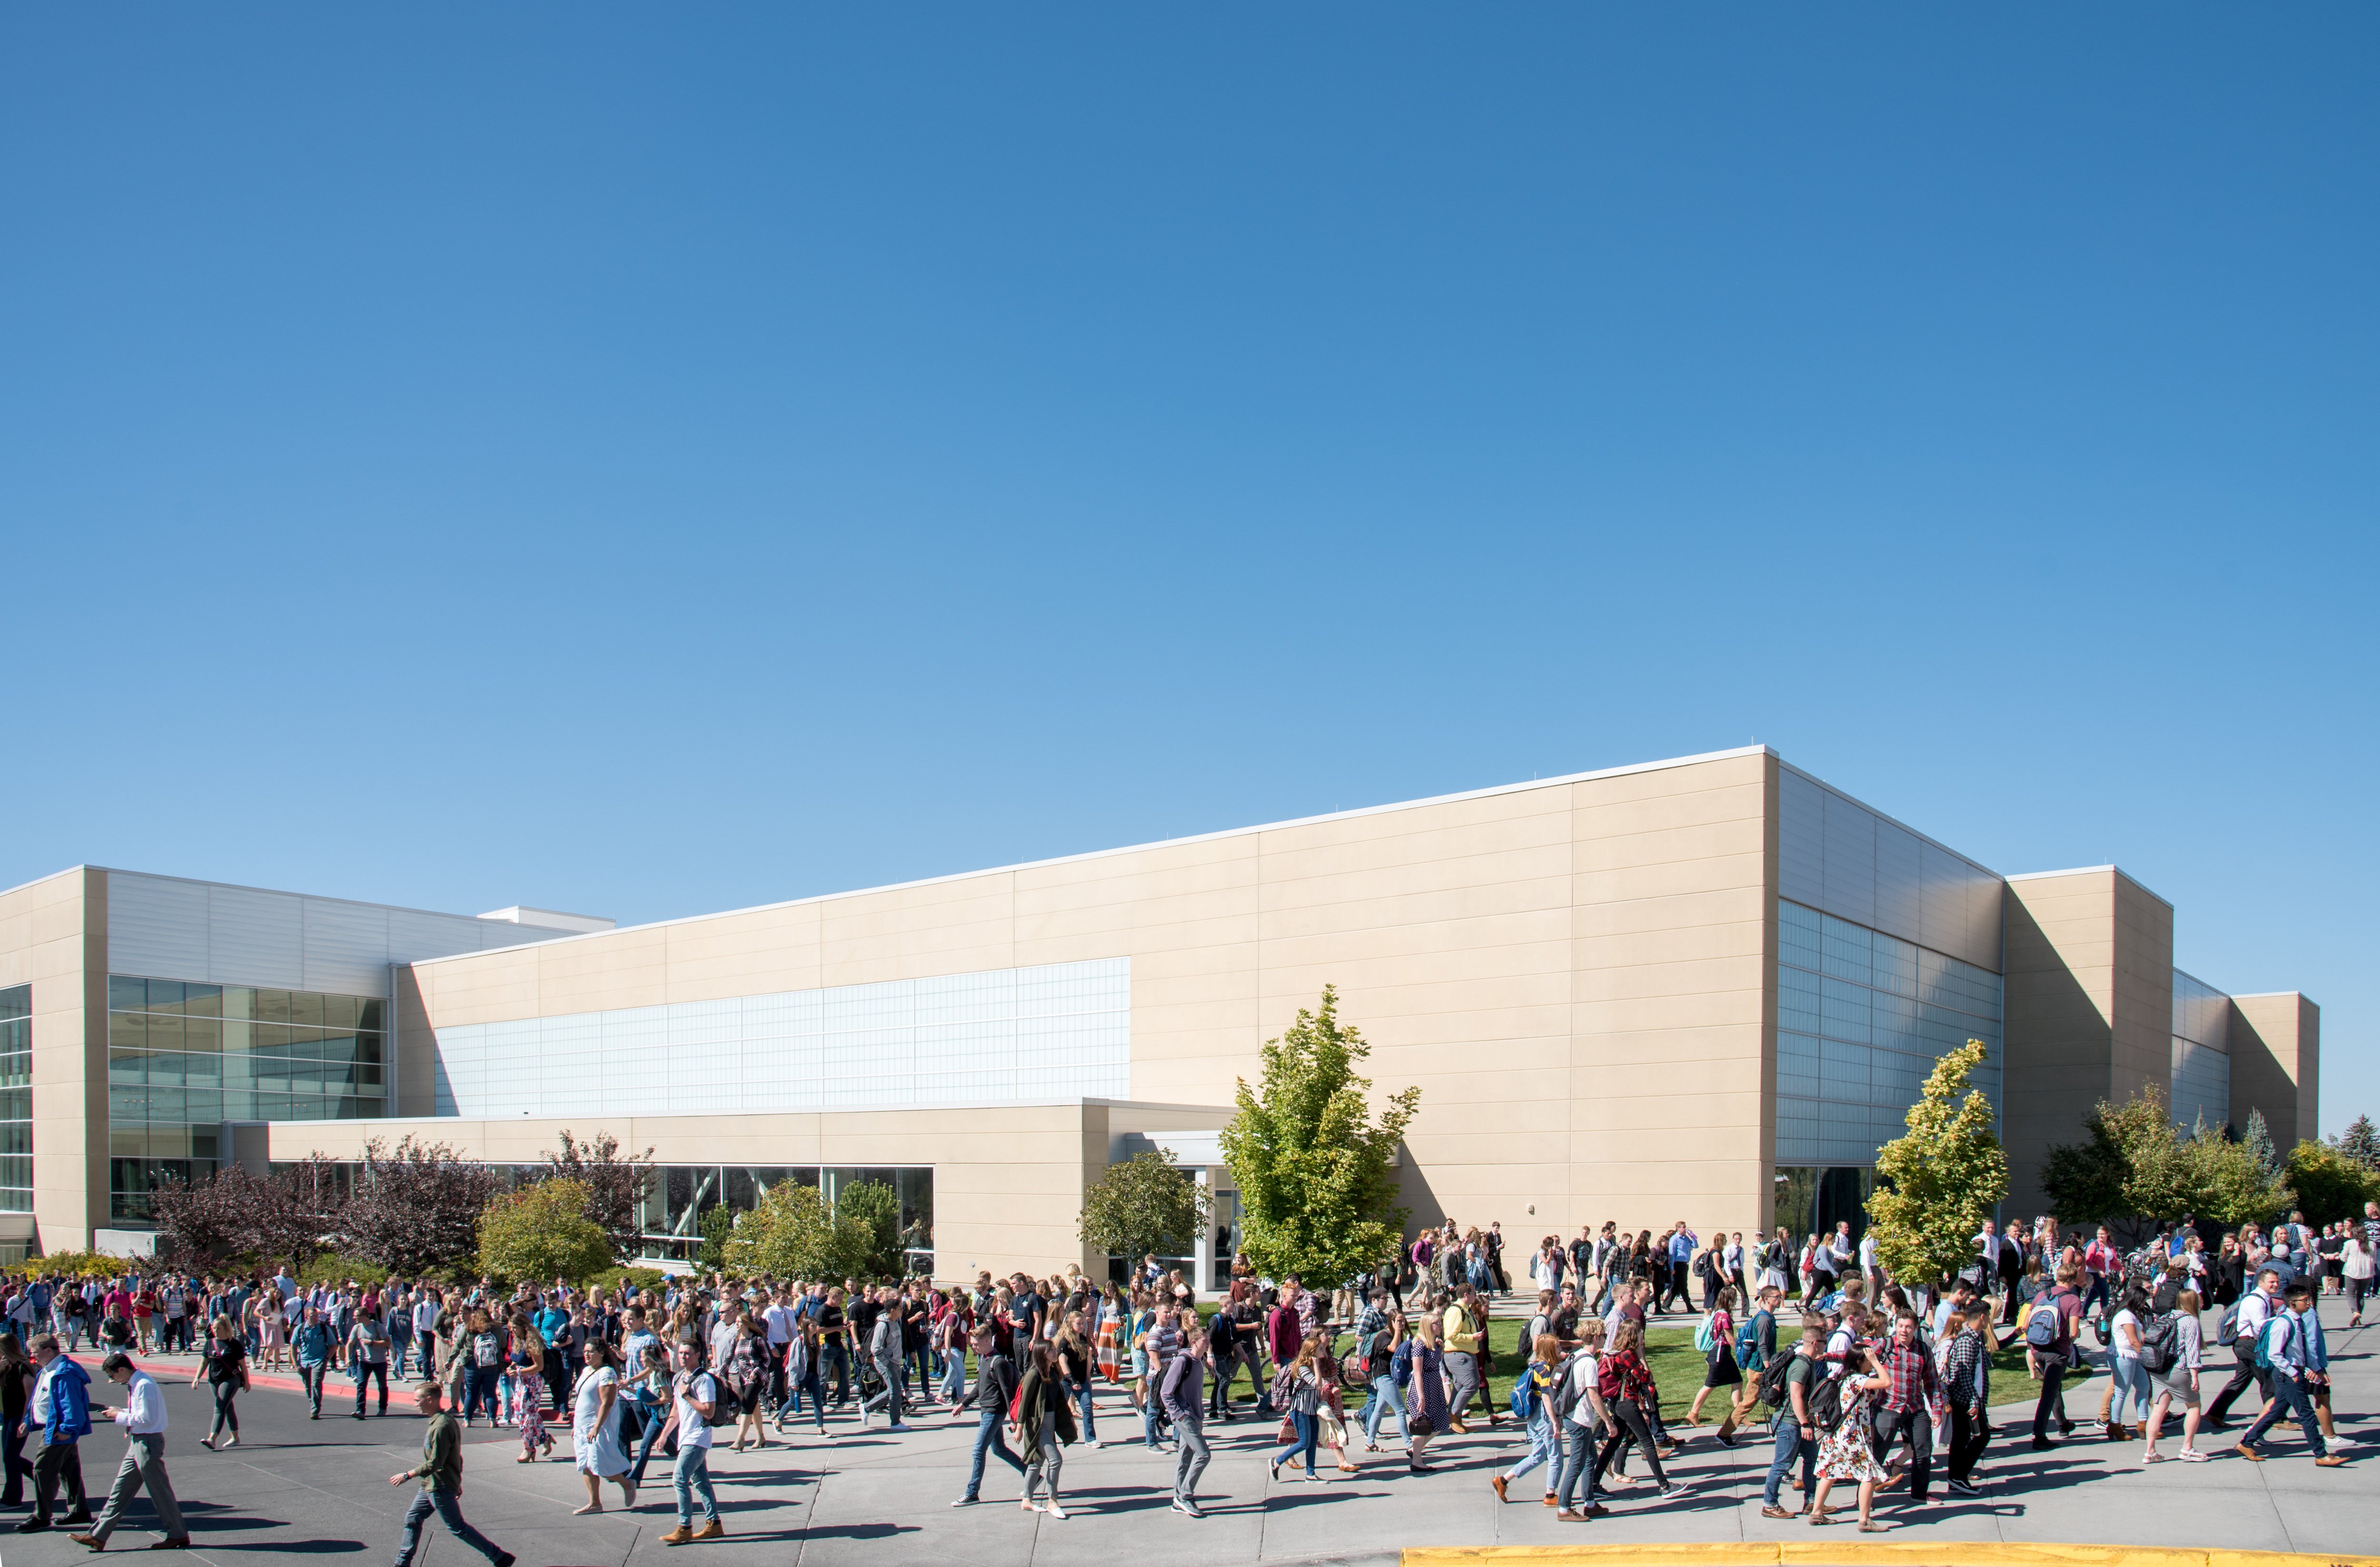 Students walk out of the BYU-Idaho Center in Rexburg, Idaho, following the first devotional of Fall semester on Sept. 18, 2018.